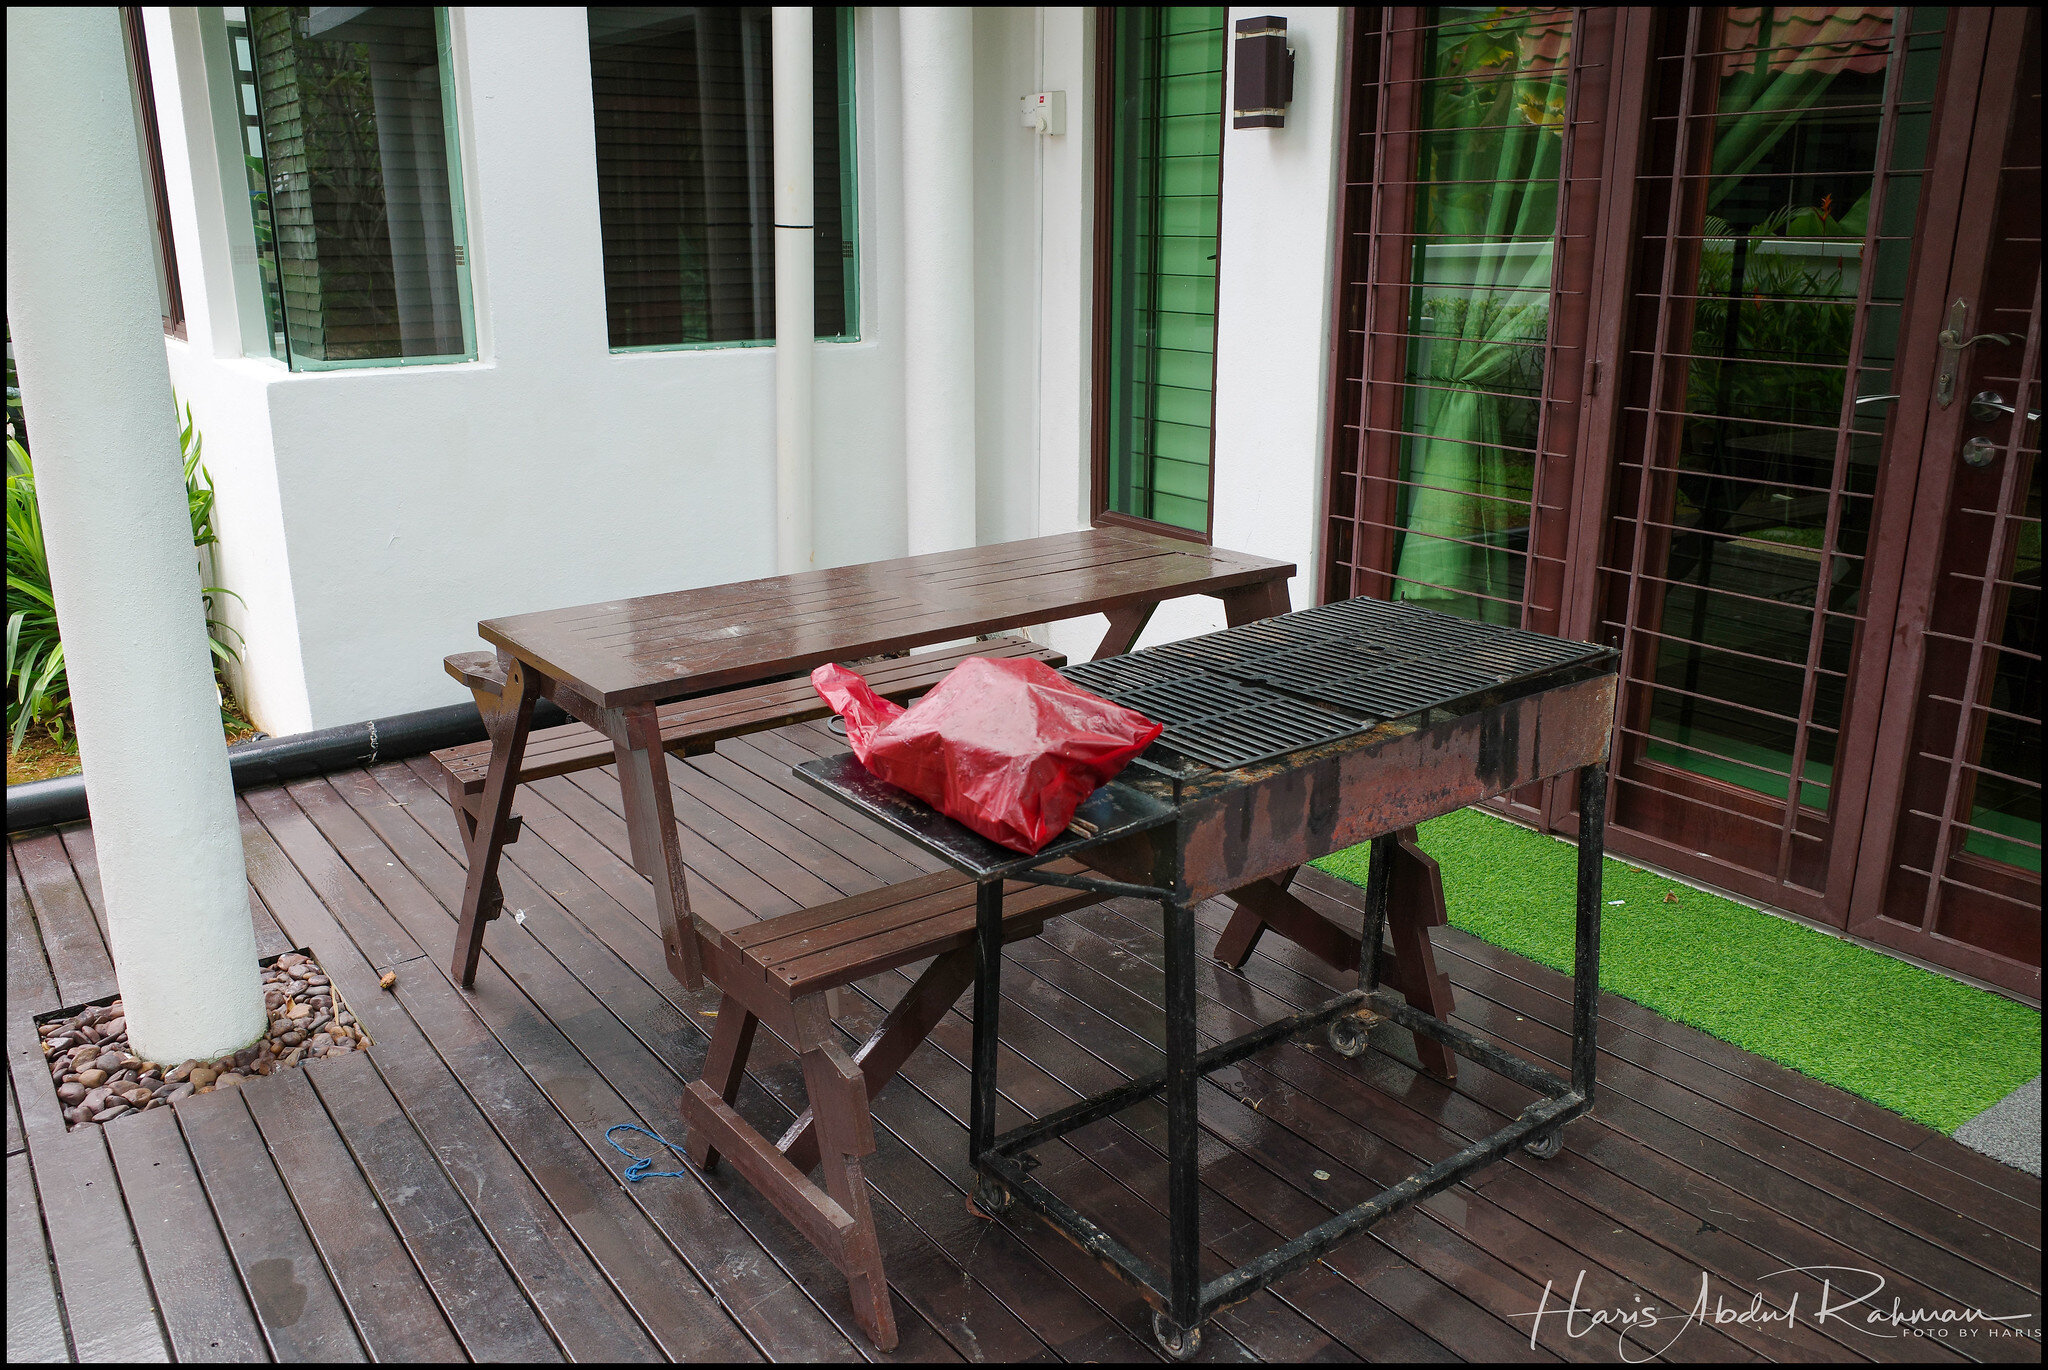 Barbecue area right outside the dining room